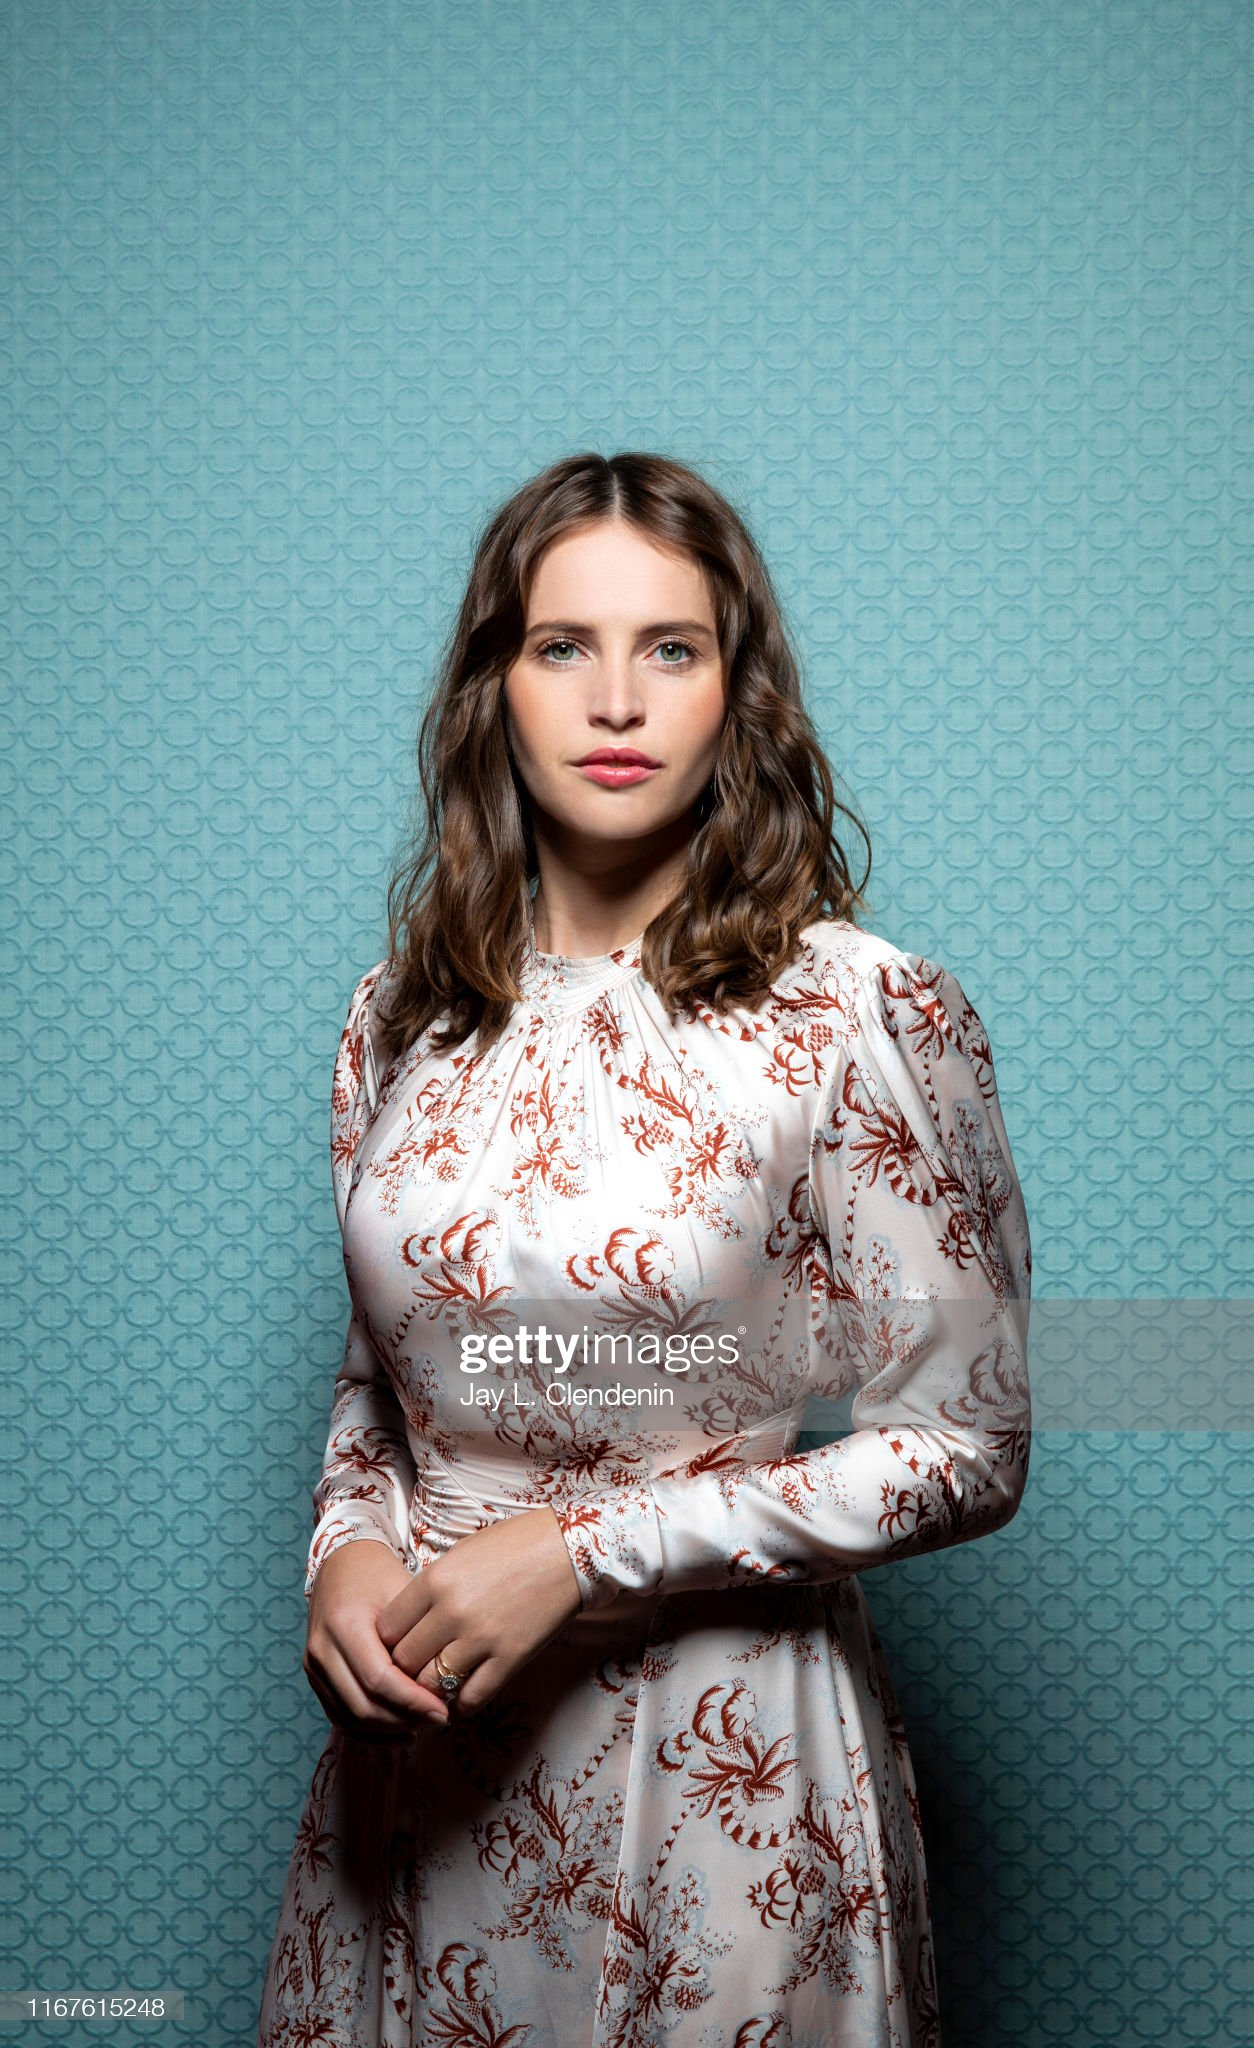 ¿Cuánto mide Felicity Jones? - Altura - Real height Actress-felicity-jones-from-the-aeronauts-is-photographed-for-los-picture-id1167615248?s=2048x2048